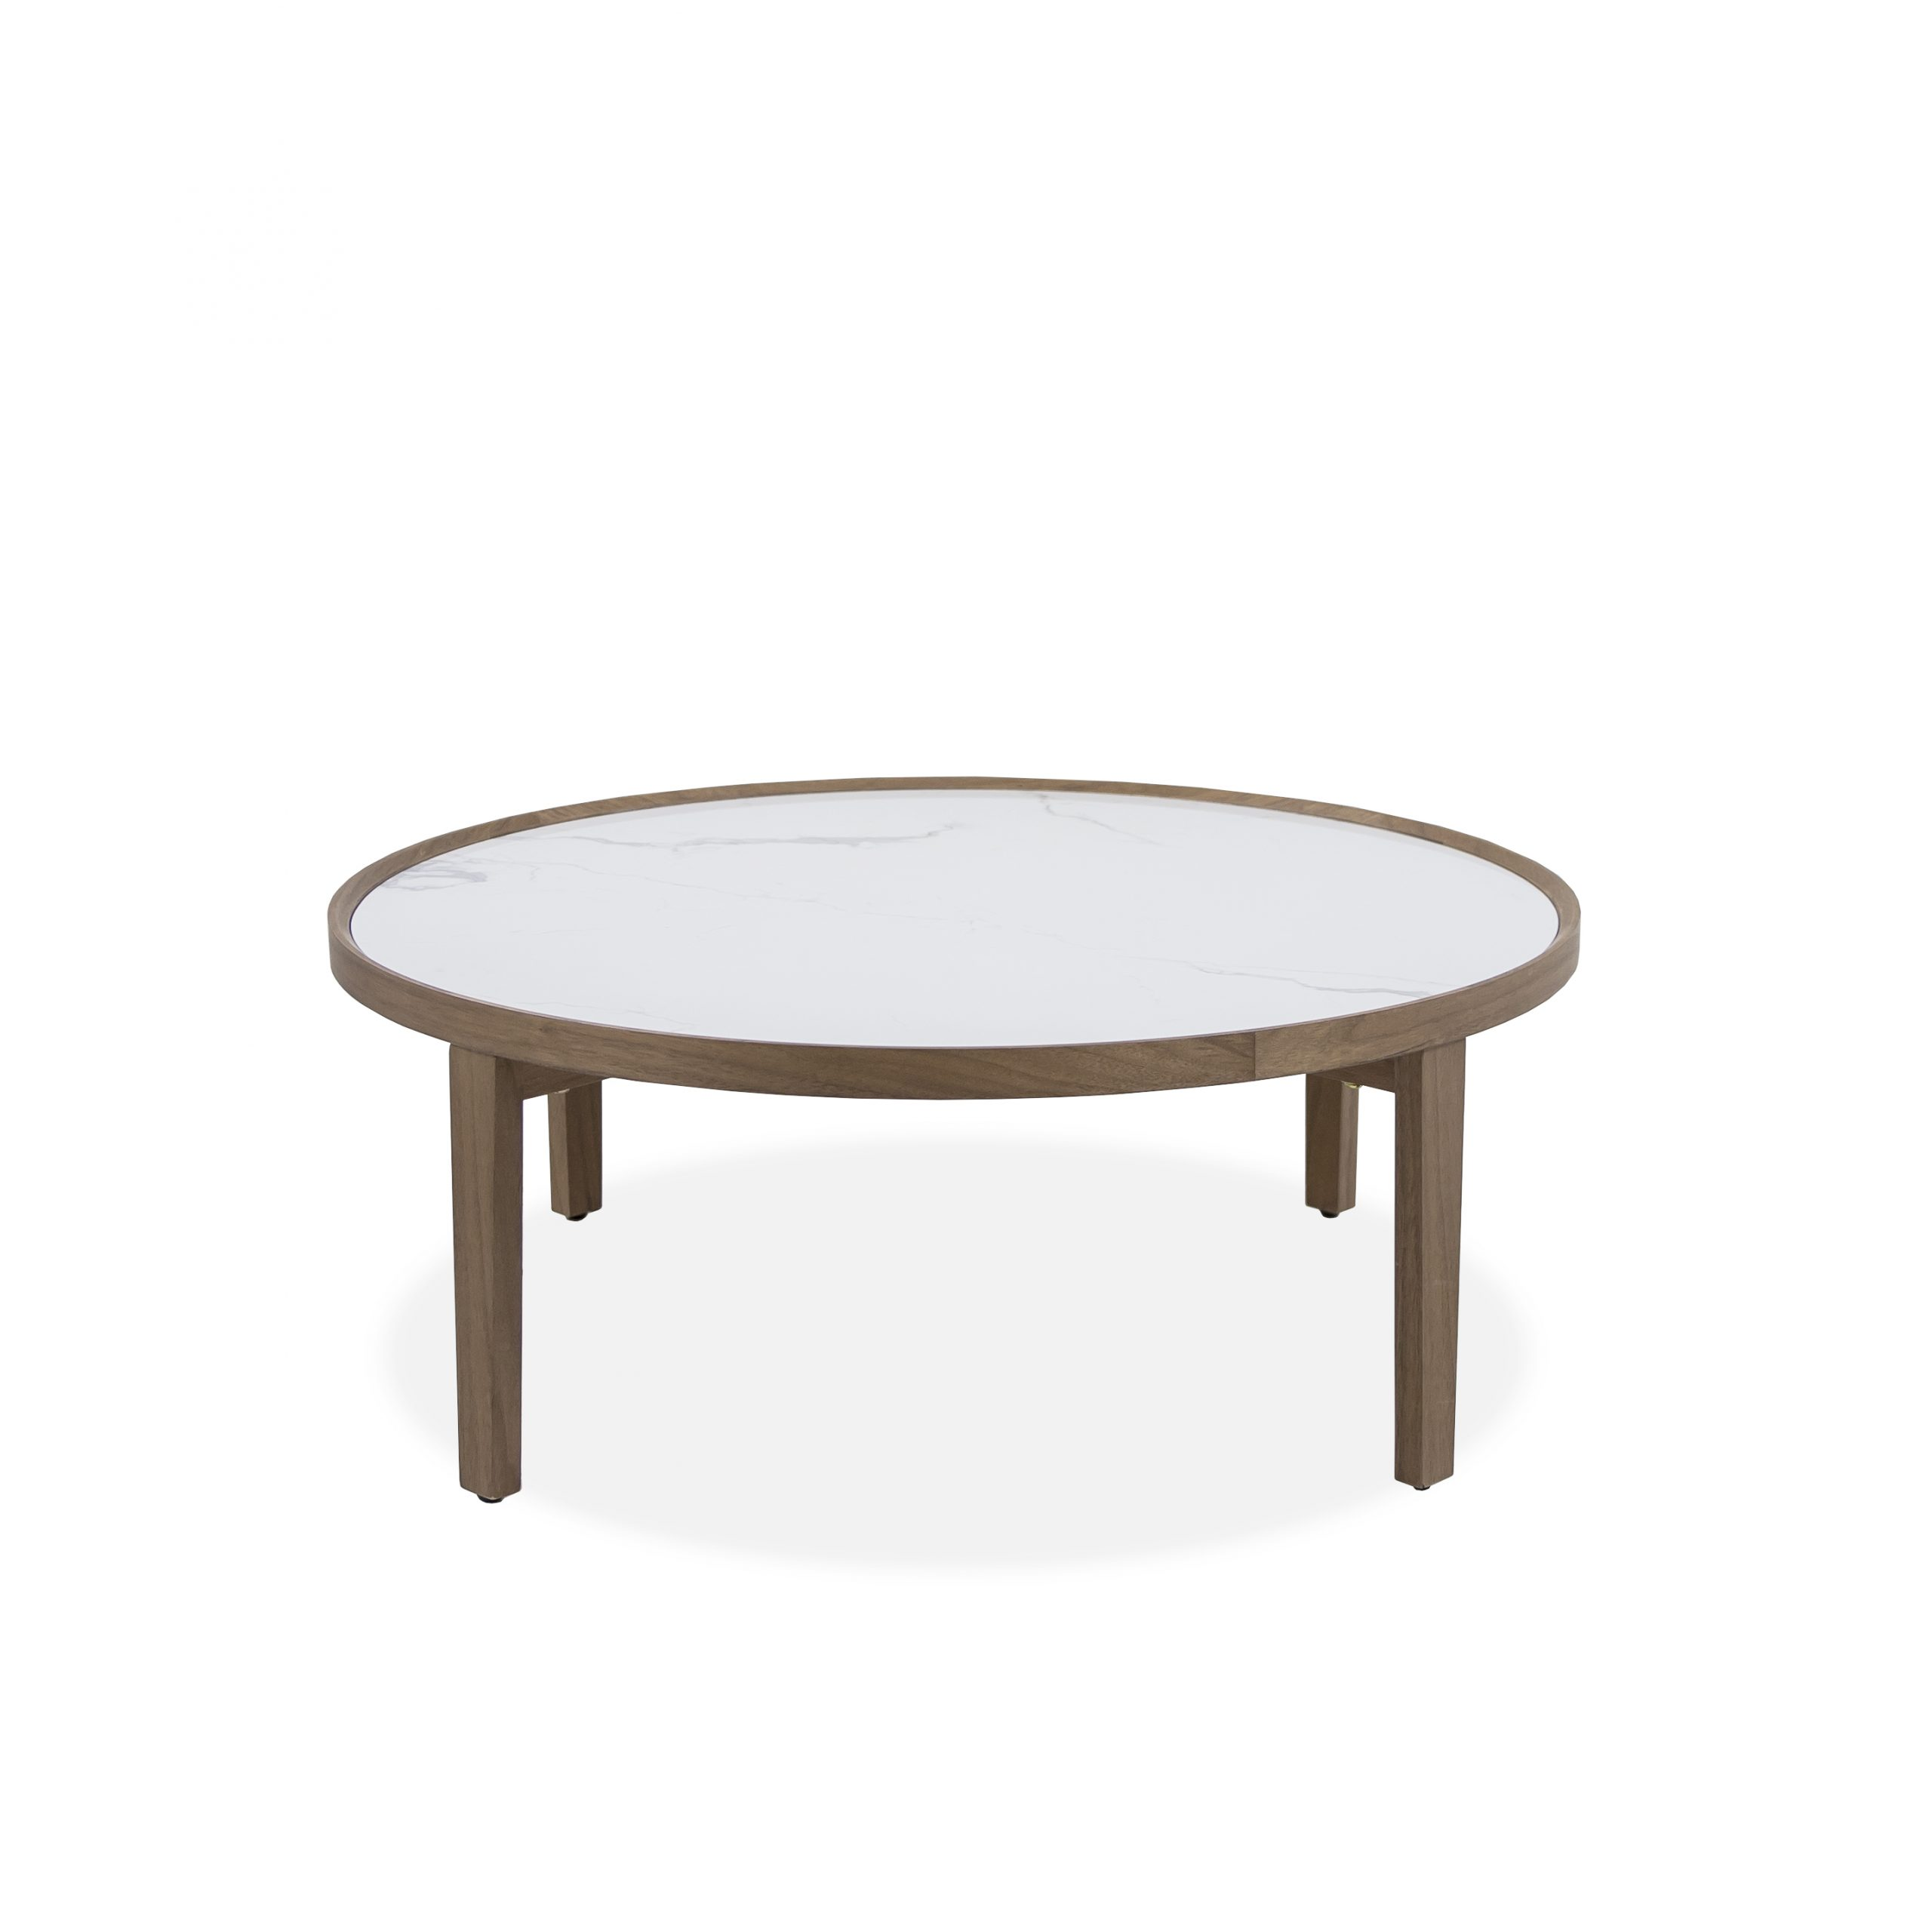 Ophelia Coffee Table Scandesigns Furniture